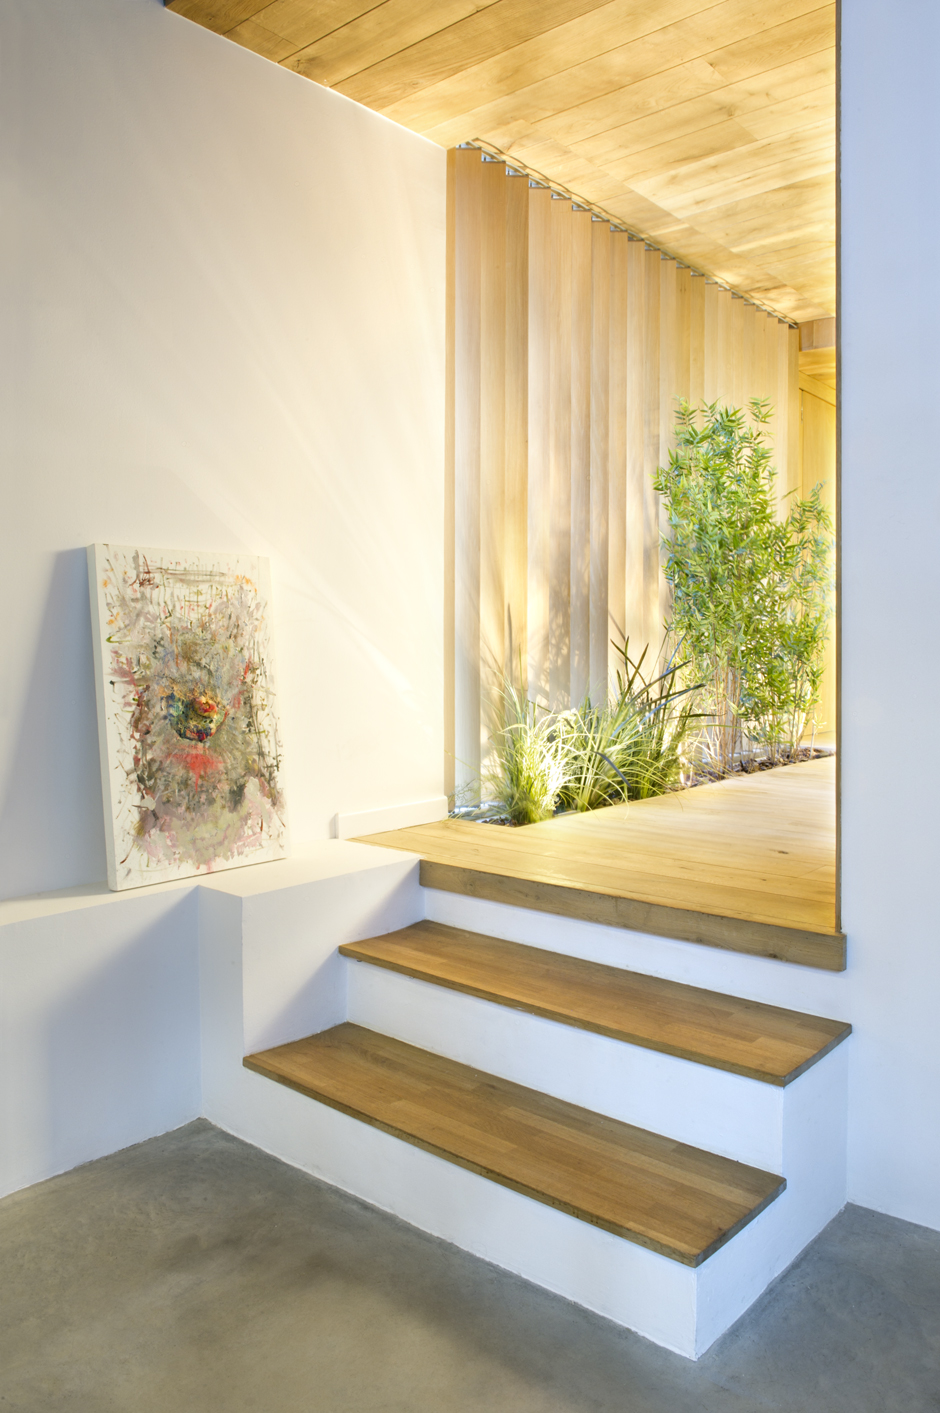 Steps To Draw A Person: Industrial Home With Interior Planting And Transparent Walls